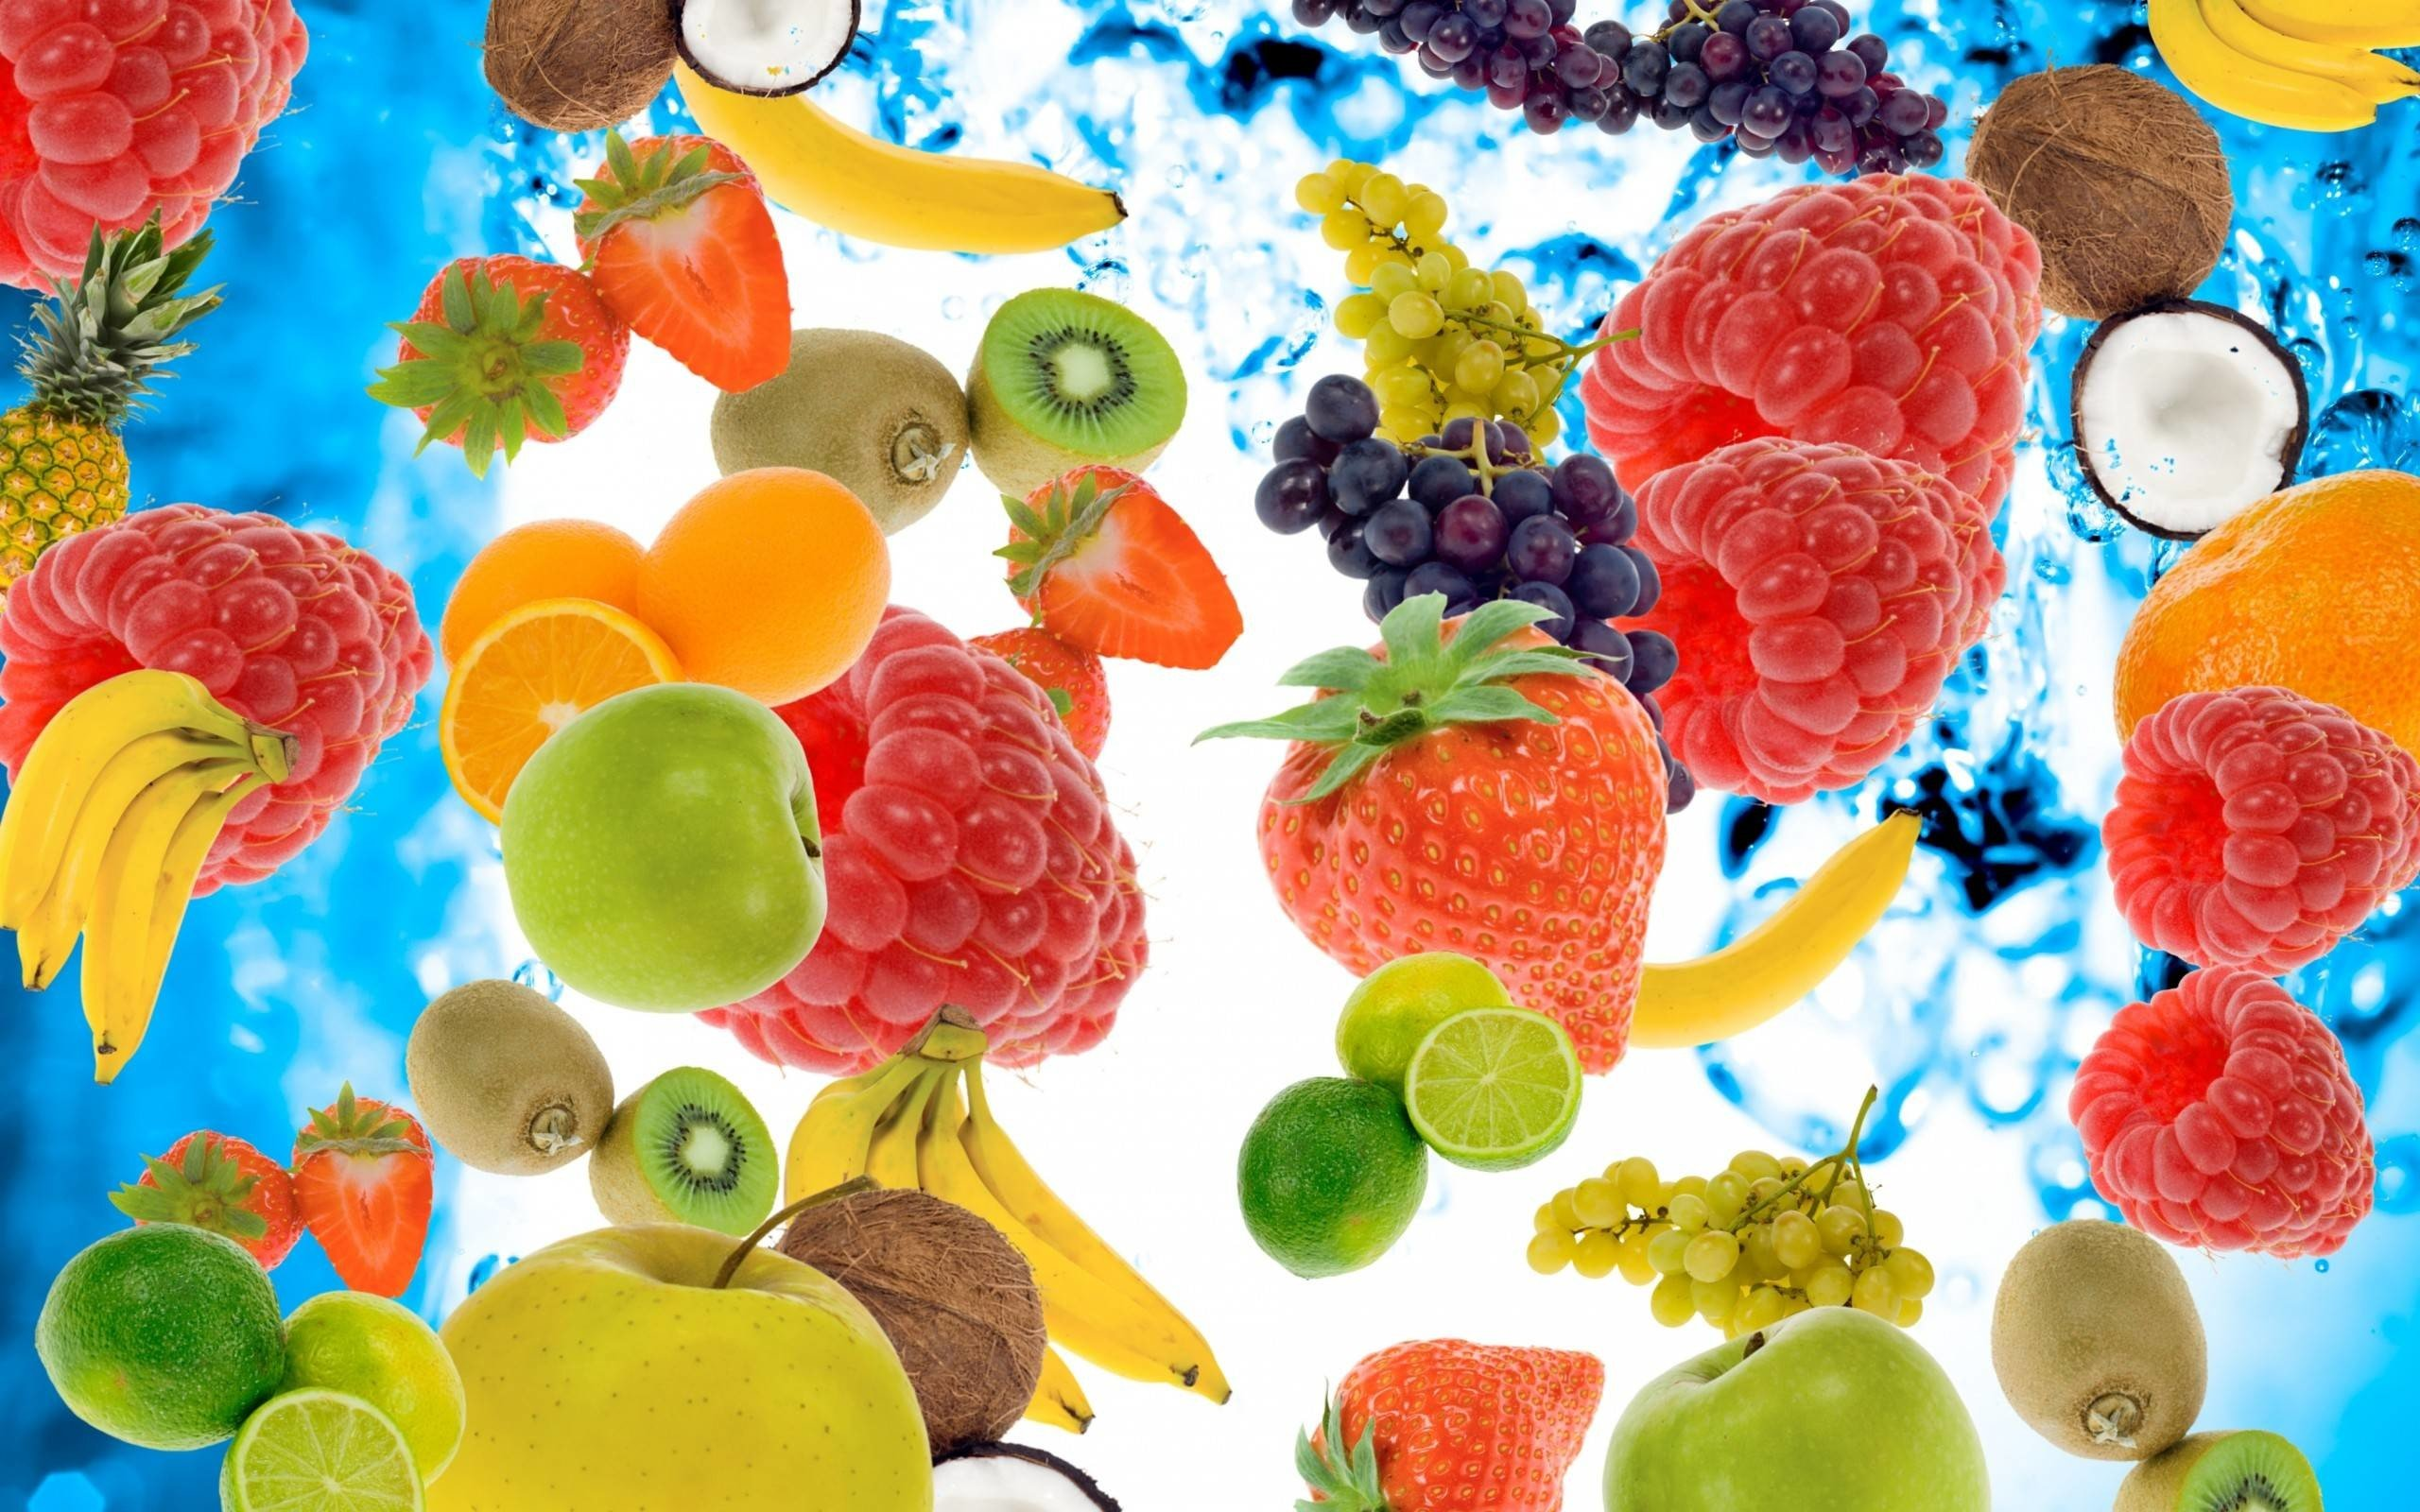 62 Fruit Wallpapers on WallpaperPlay 2560x1600